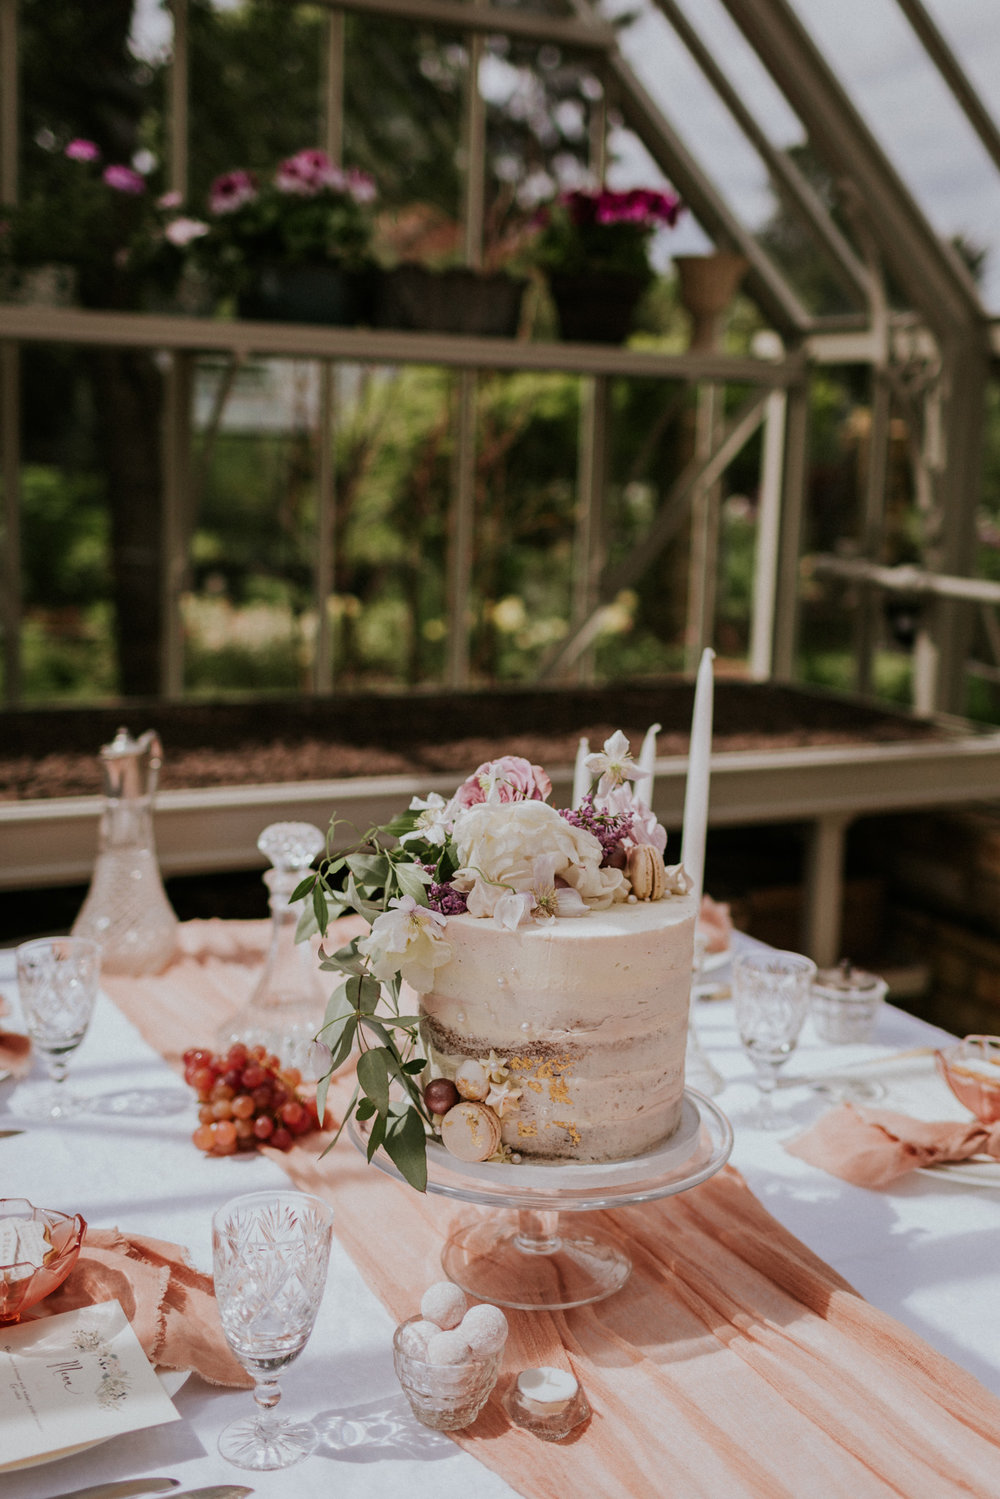 The Timeless Stylist - Relaxed Wedding Design - Wedding Cake